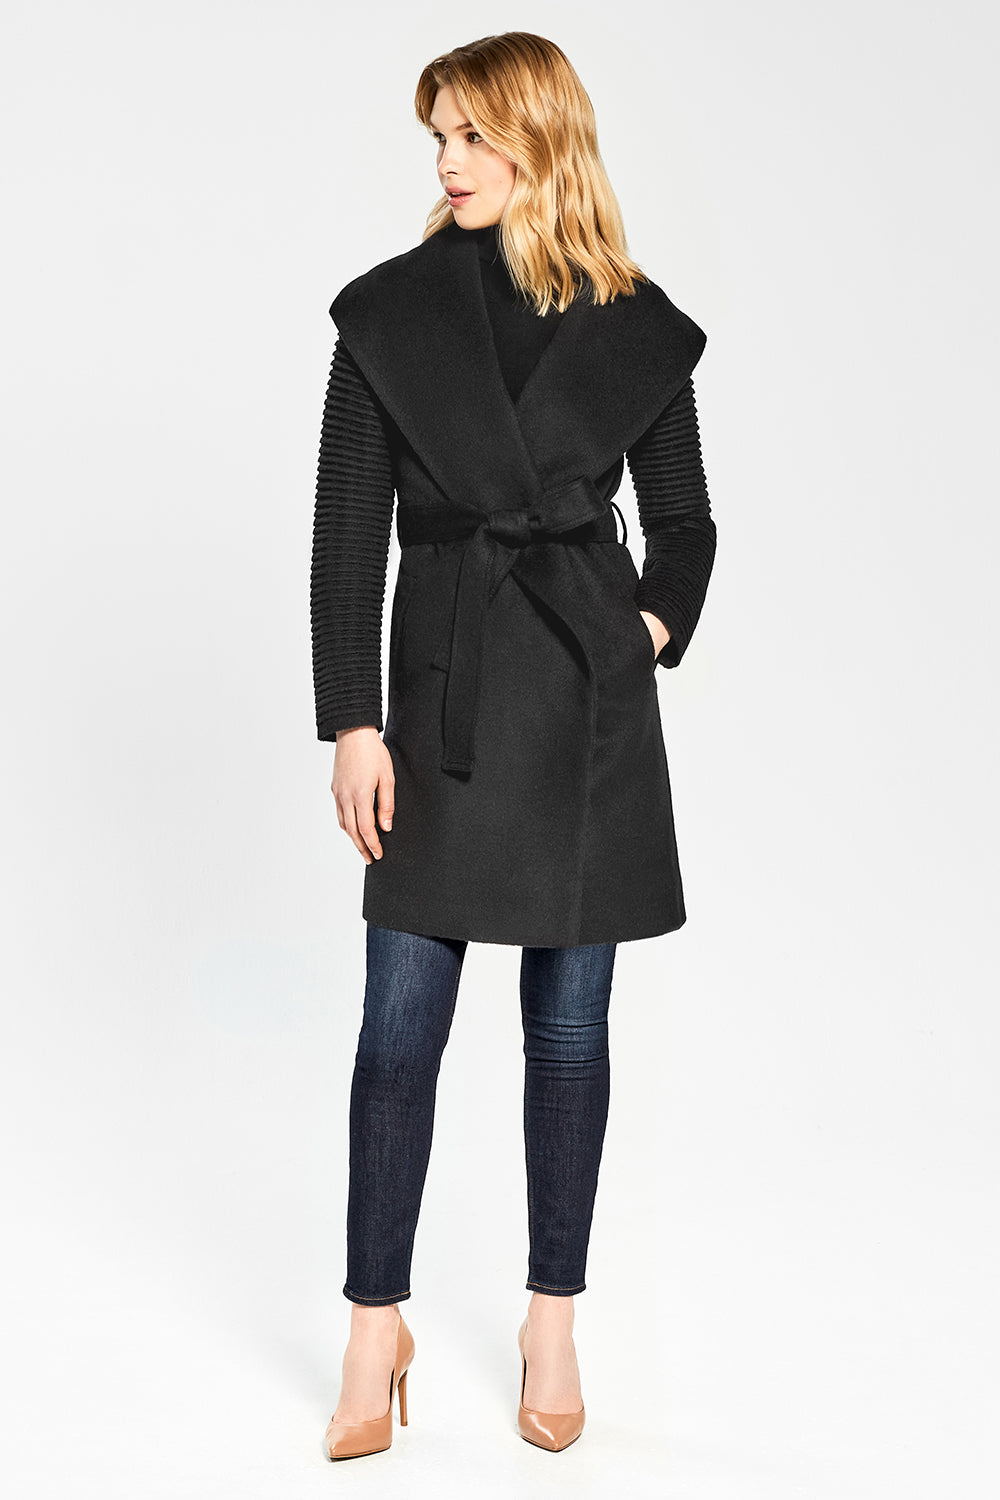 Sentaler Mid Length Shawl Collar Wrap Coat with Ribbed Sleeves featured in Baby Alpaca and available in Black. Seen from front.